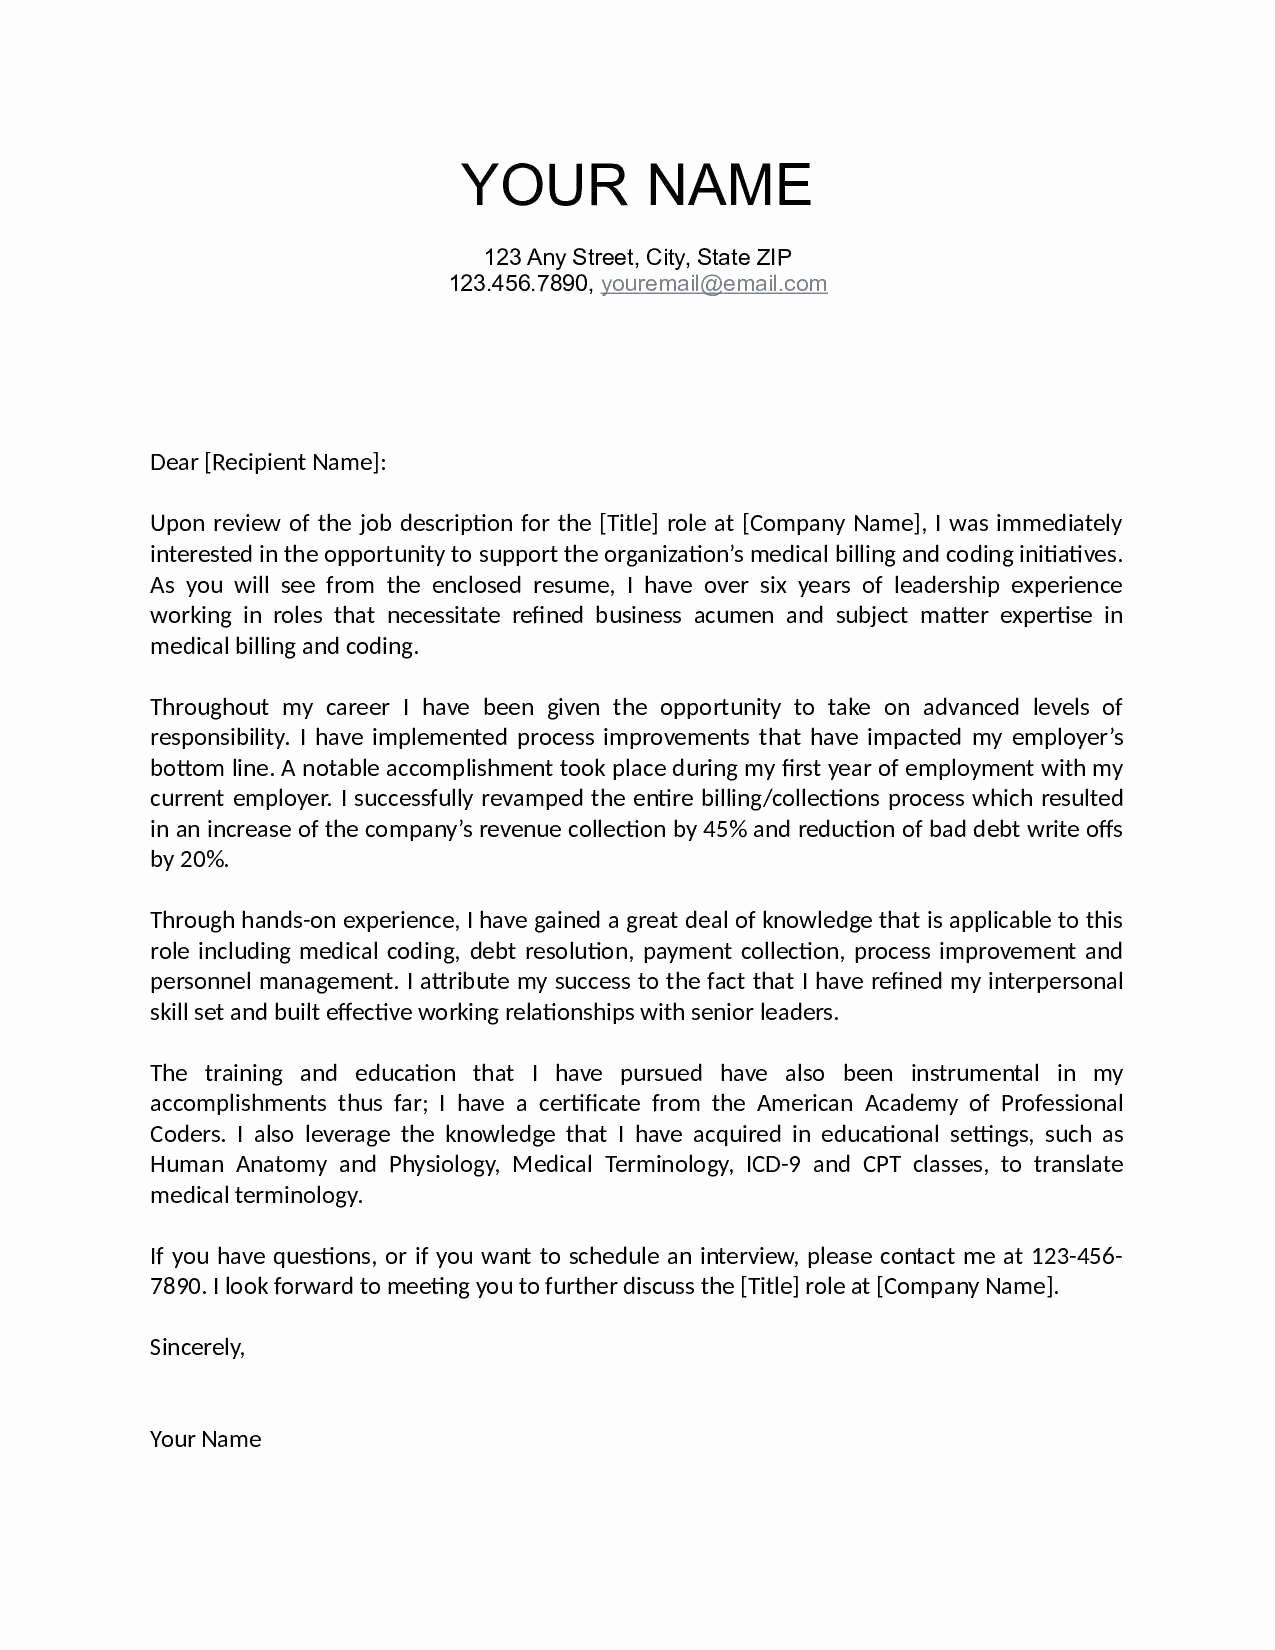 Basic Cover Letter Template Free - Writing A Good Cover Letter Beautiful Cover Letter Overseas Job New